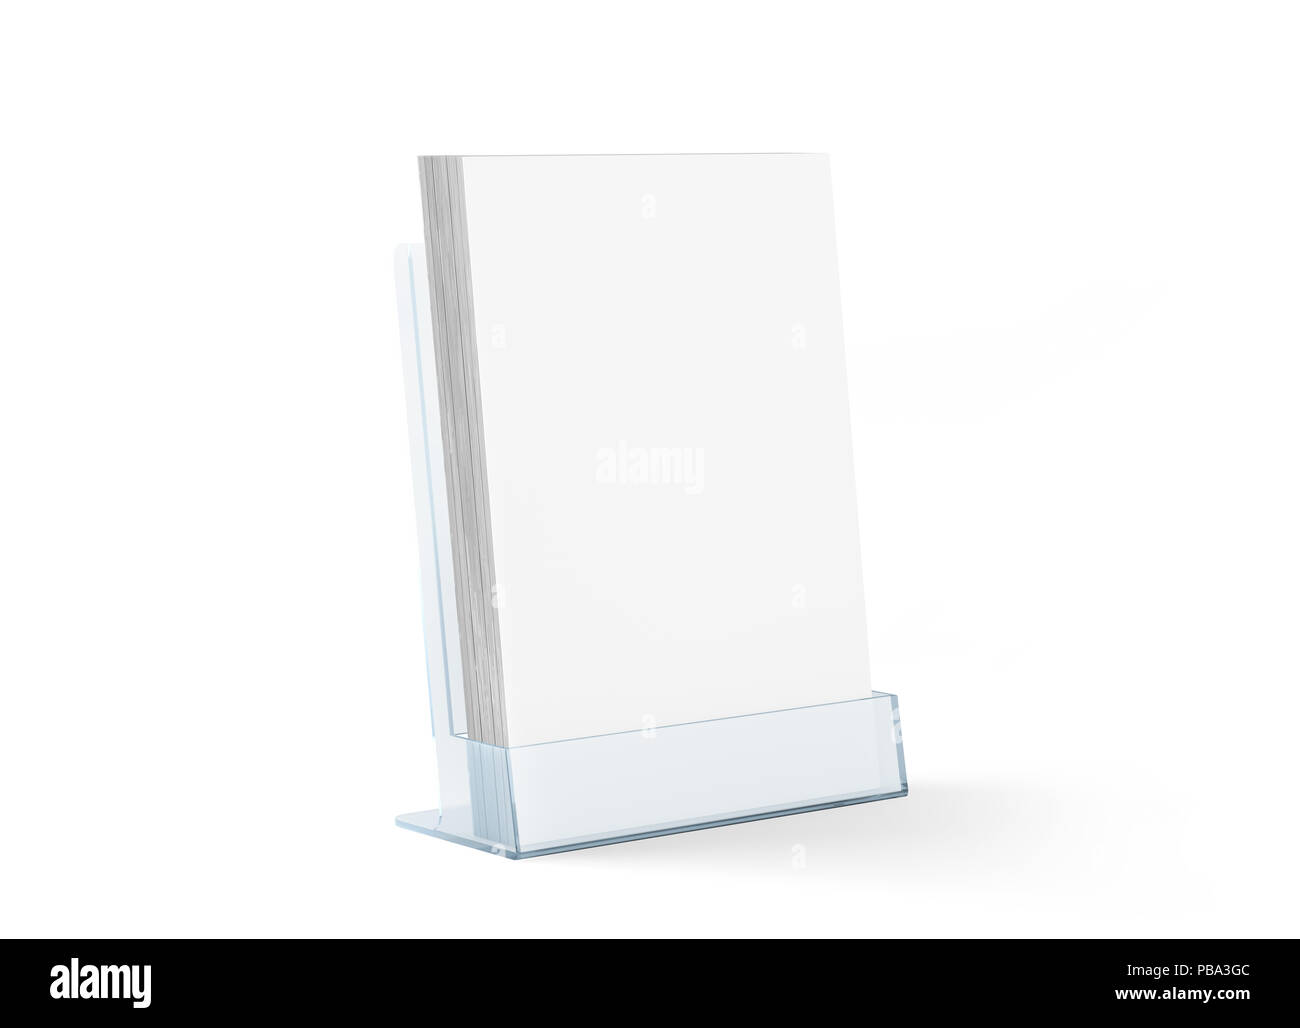 Table Transparente Plexiglass Blank Flyer Mockup Glass Plastic Transparent Holder Isolated 3d